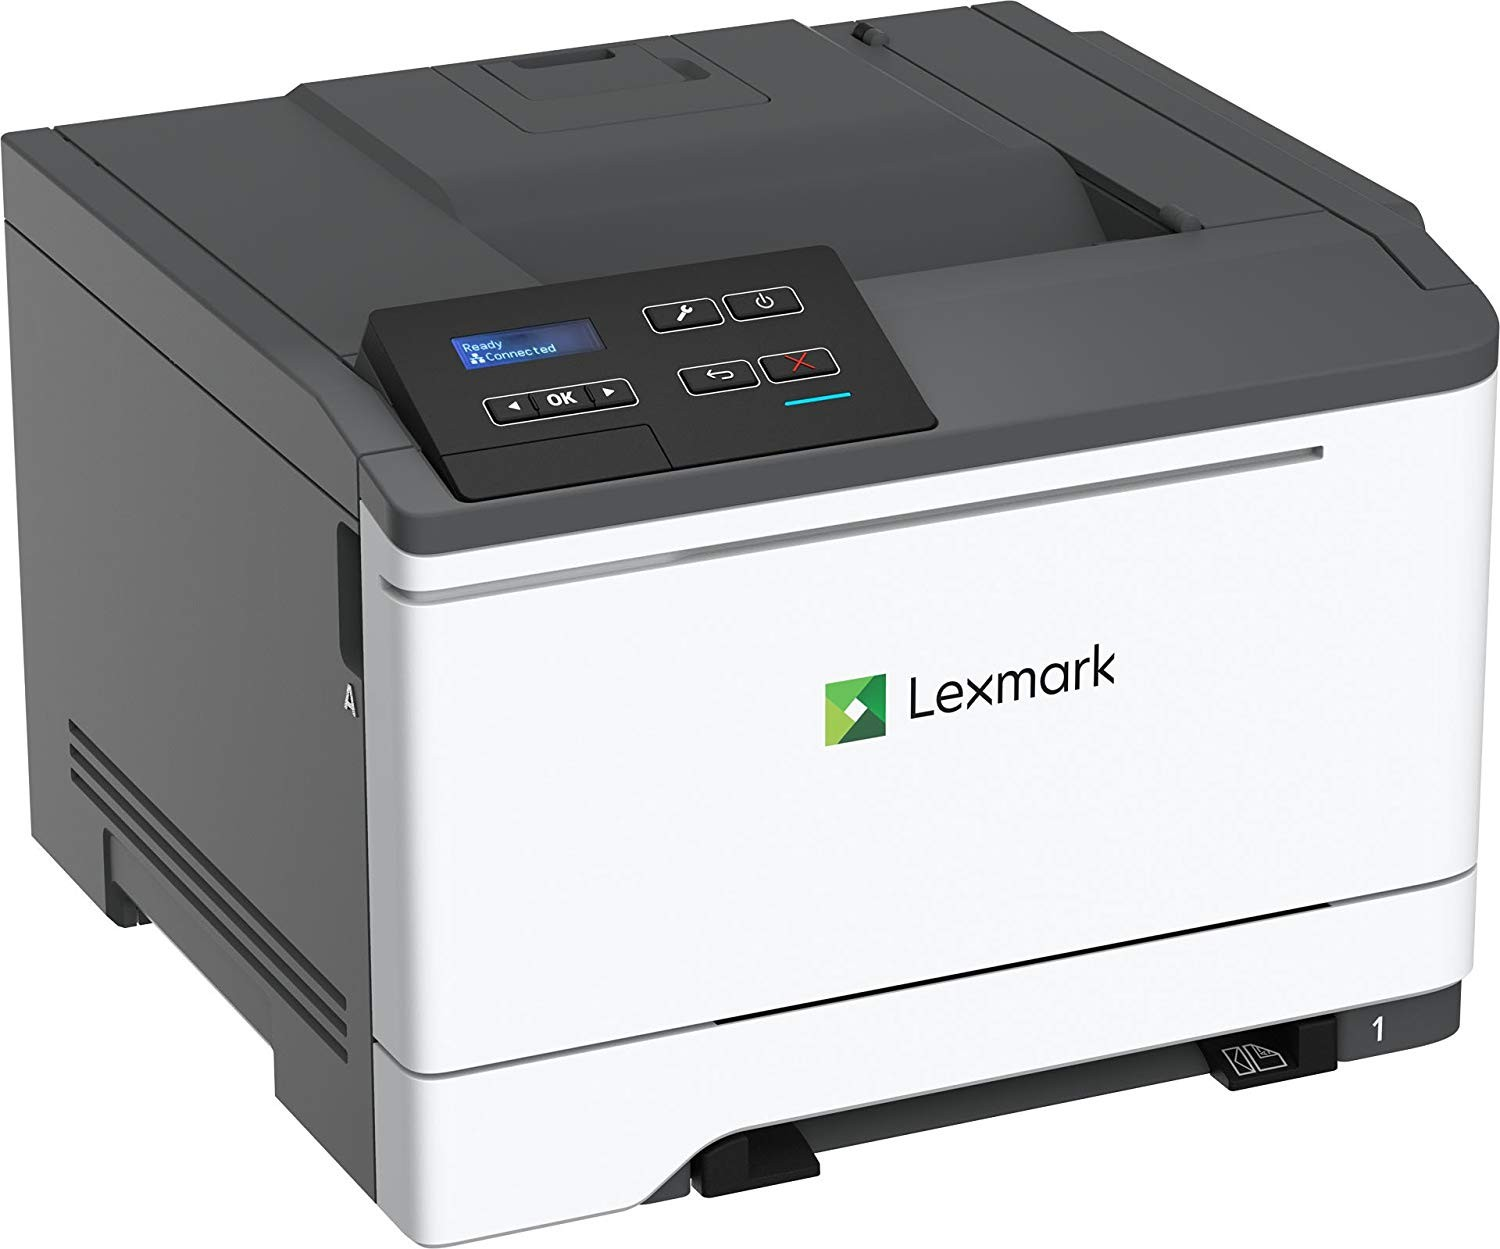 Lexmark 42CC010 C2325dw Wireless LAN Duplex Color Laser Printer 42CC010